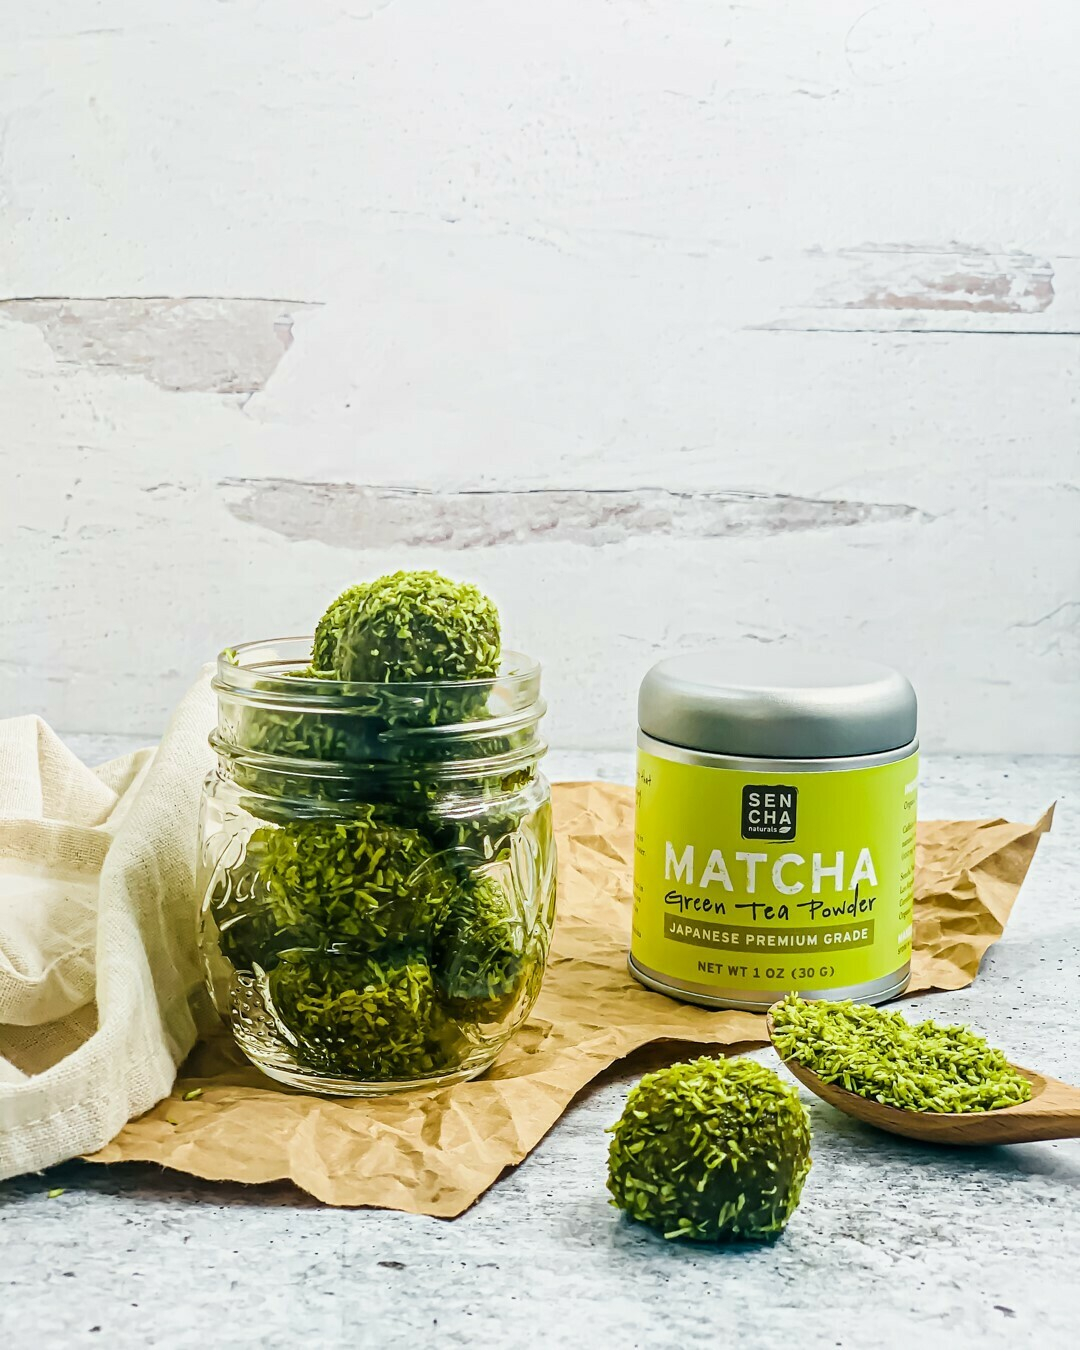 Sencha Japanese Premium Matcha Green Tea Powder